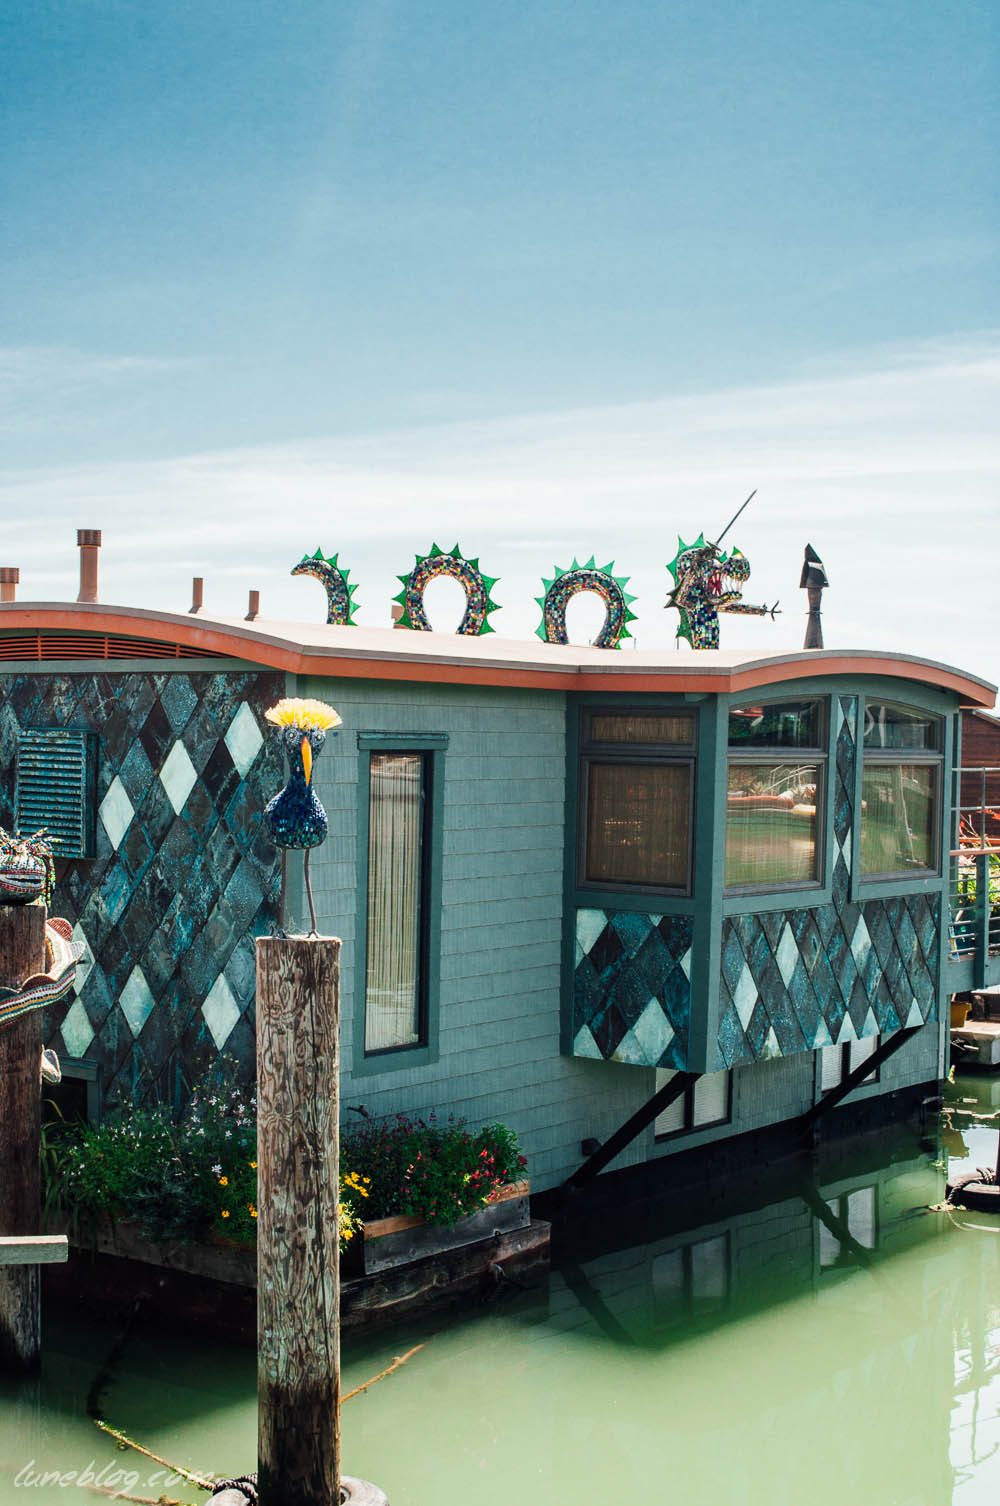 houseboats of sausalito sanfransisco lune travels blog (31 of 31).jpg